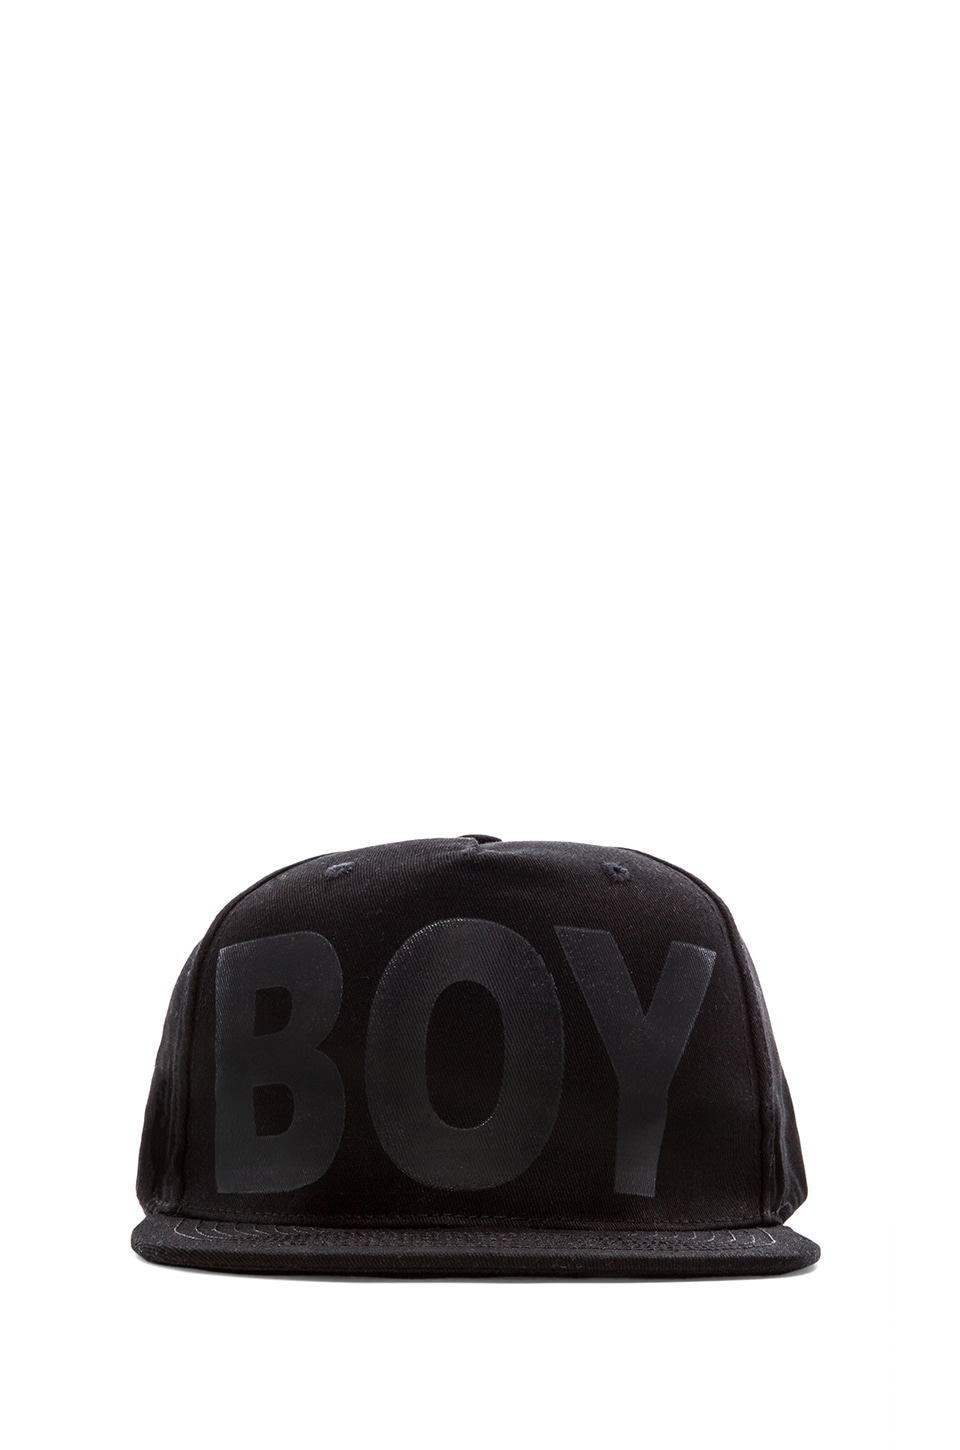 BOY London Boy Cap in Black/ Black